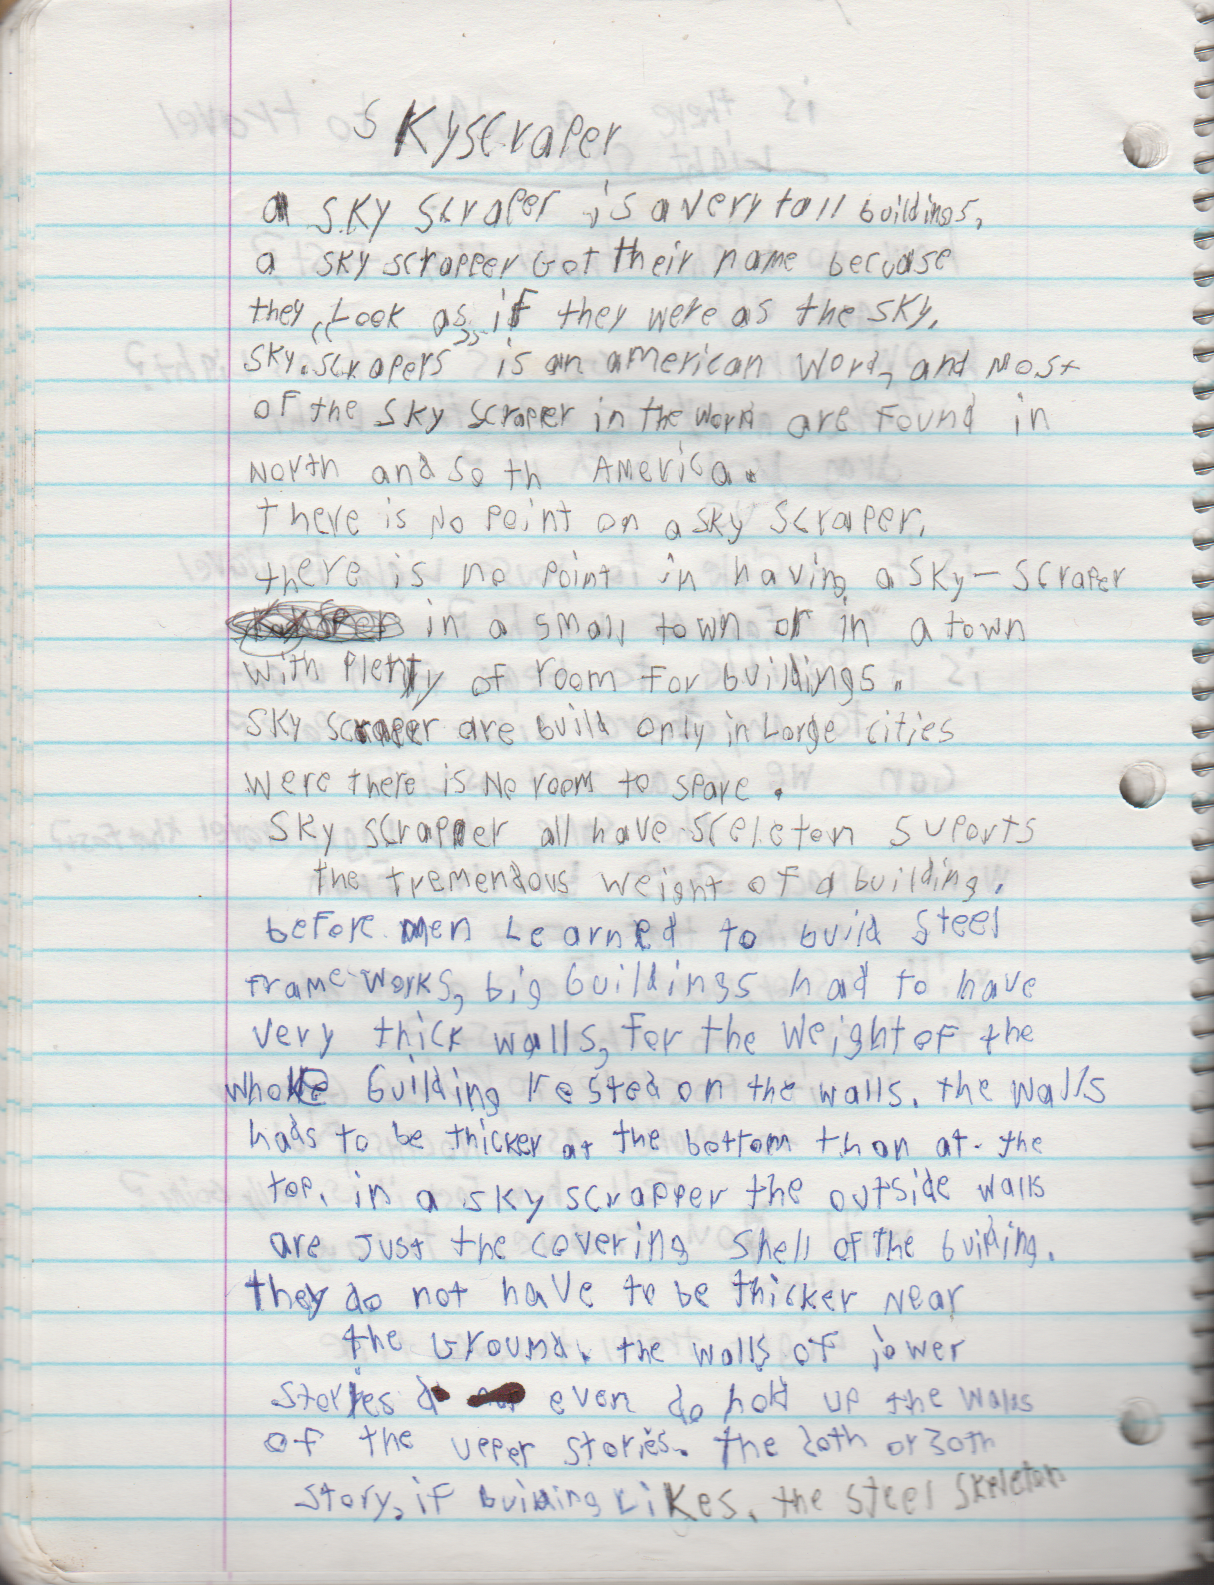 1996-08-18 - Saturday - 11 yr old Joey Arnold's School Book, dates through to 1998 apx, mostly 96, Writings, Drawings, Etc-073.png